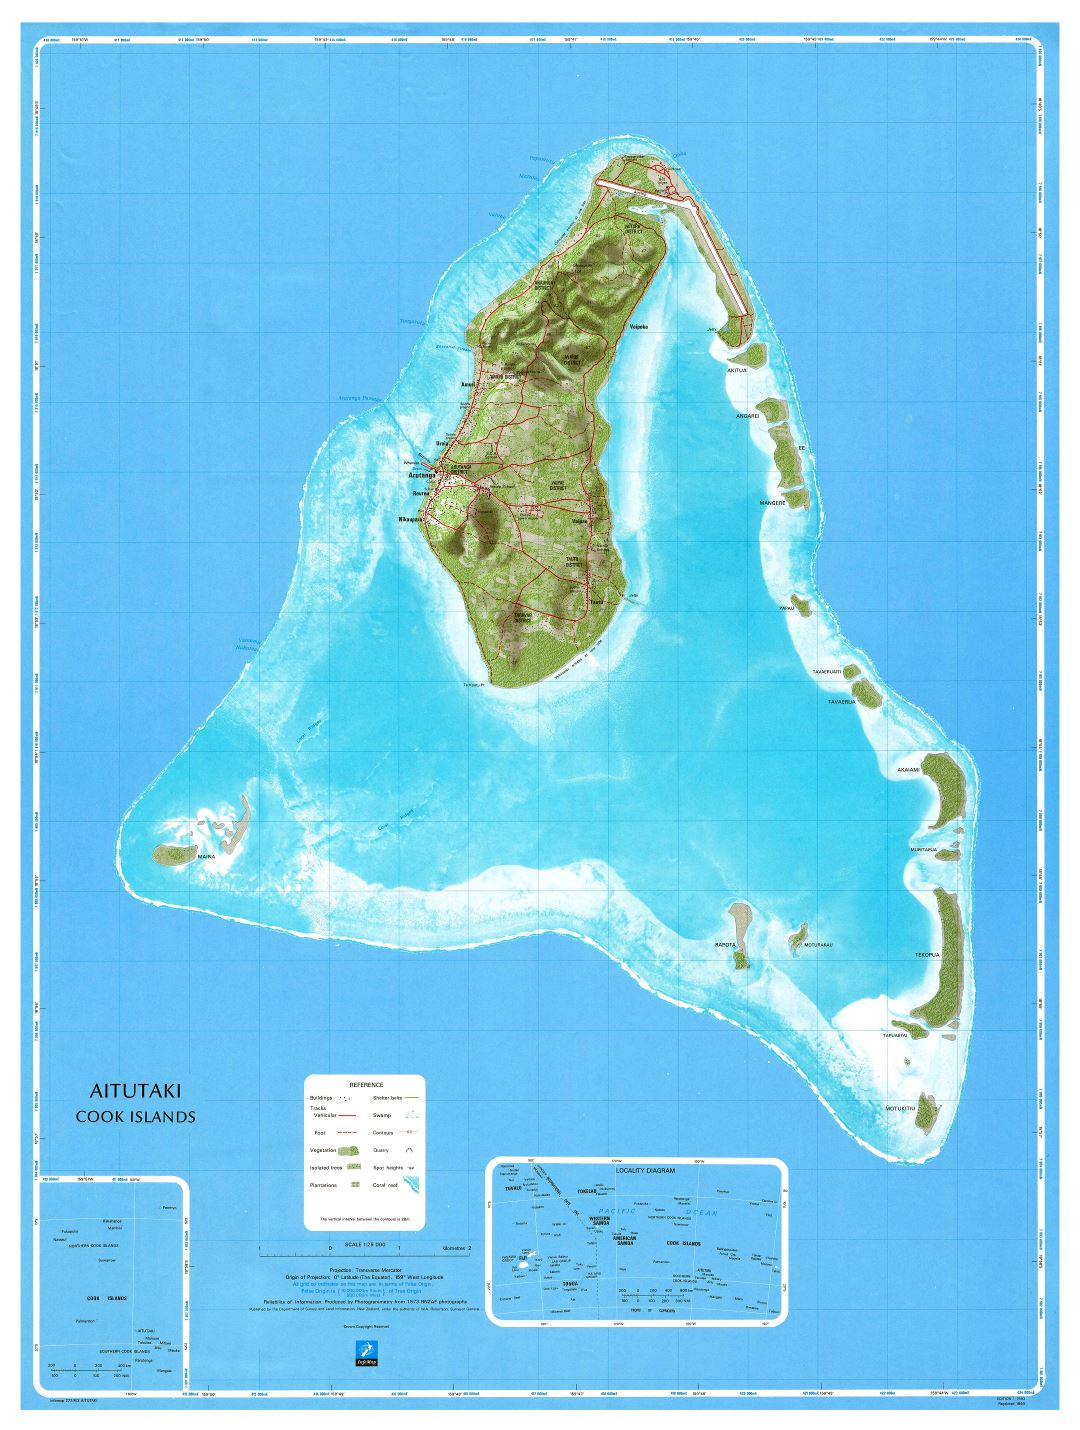 Large scale topographical map of Aitutaki Island, Cook Islands